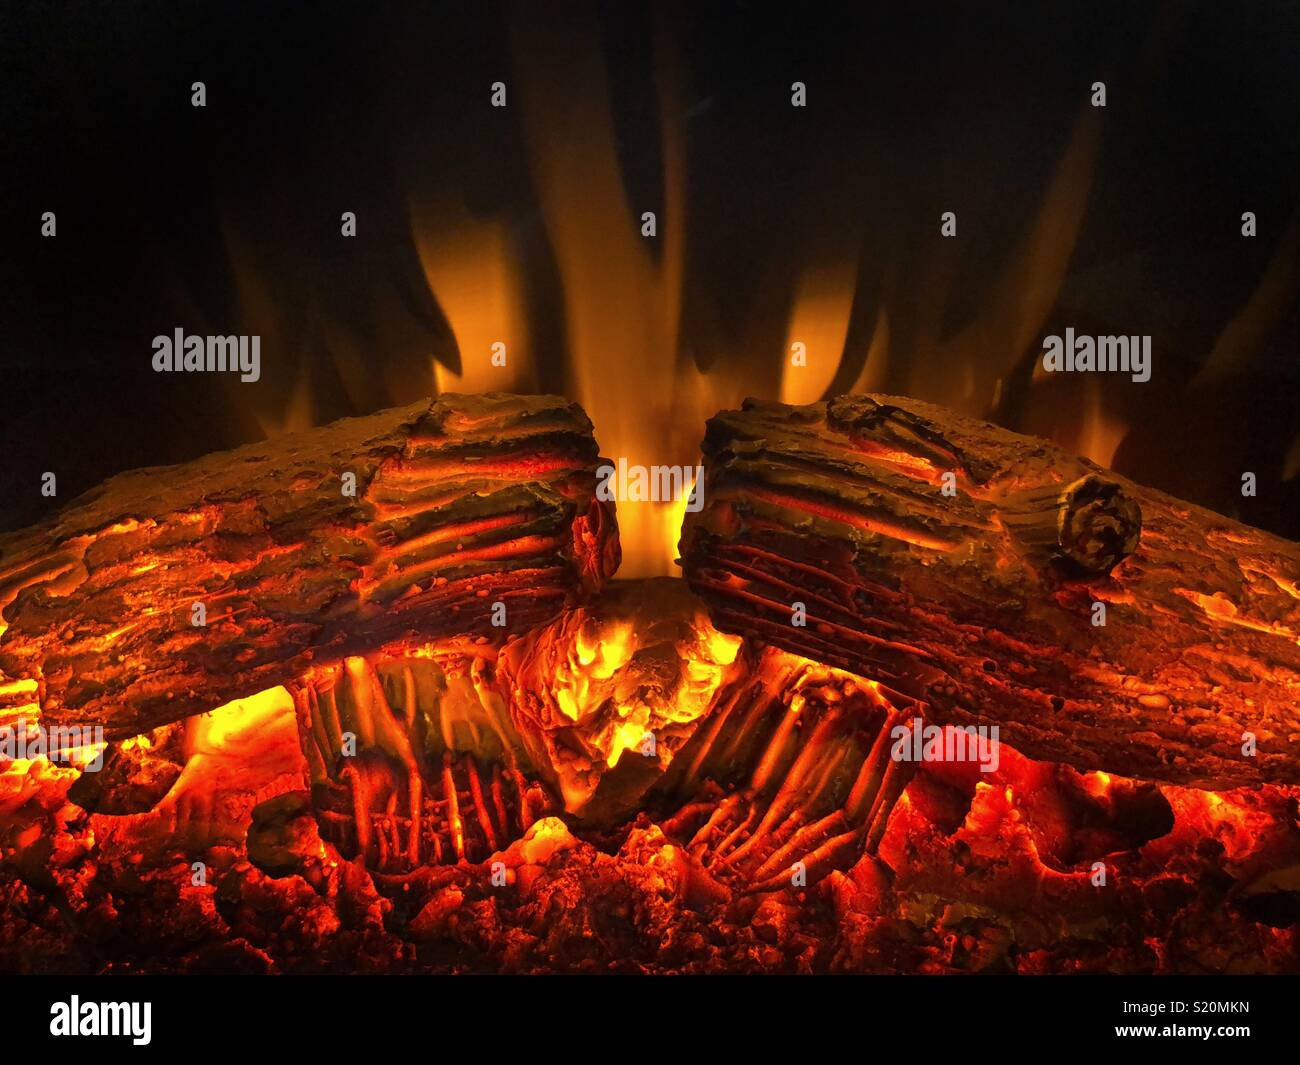 Red Hot Flames And Burning Logs In A Faux Fireplace Heater Stock